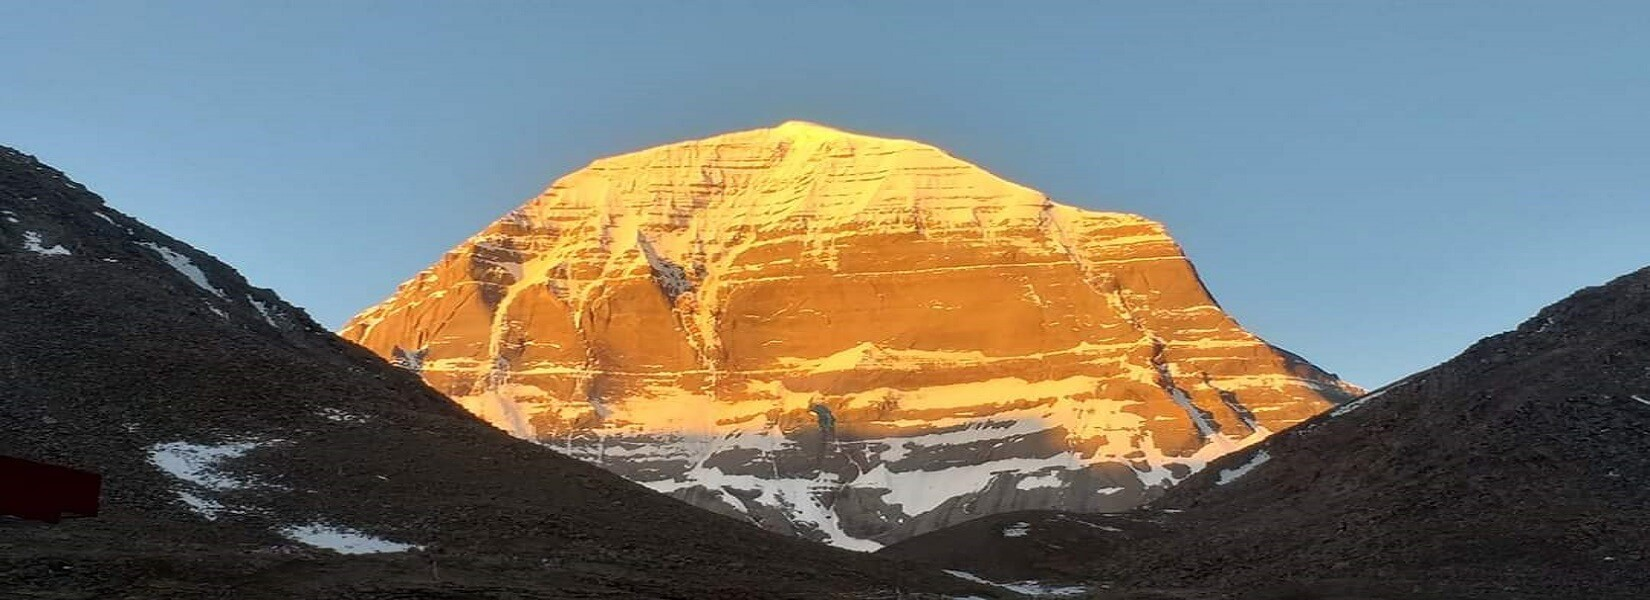 Mt Kailash Tour 10 Days